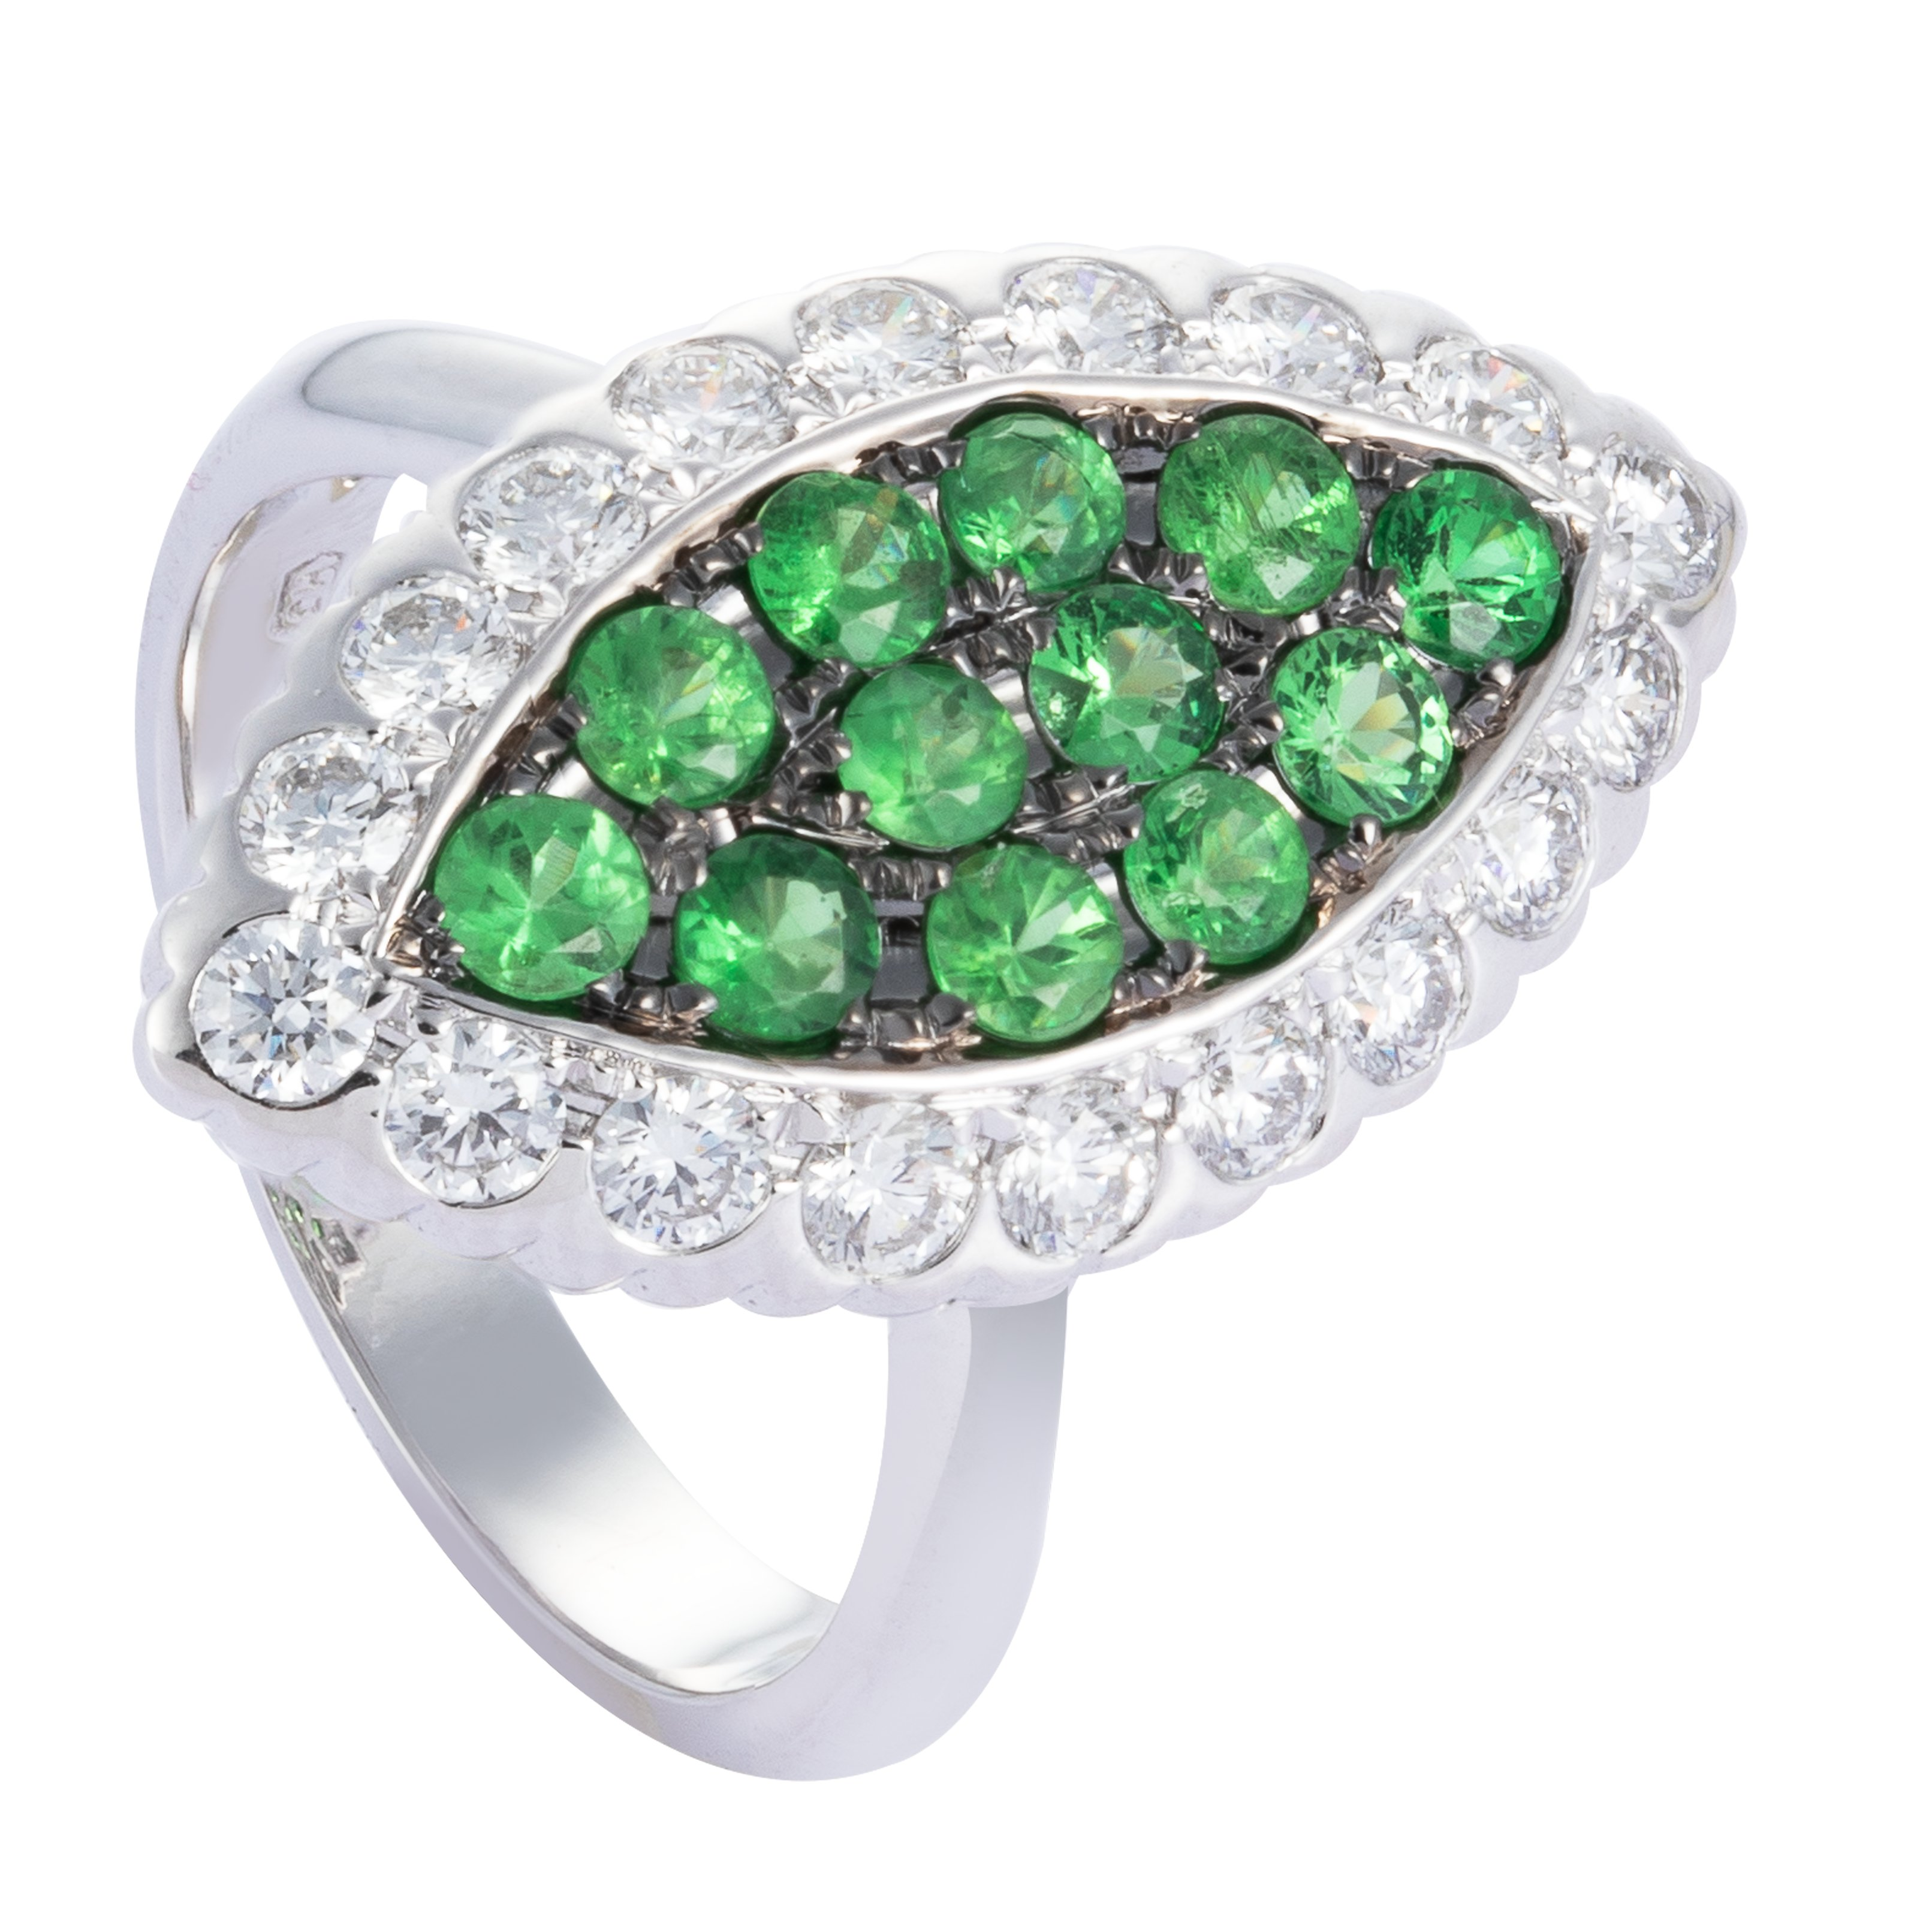 January Birthstone: Garnet & Tsavorite